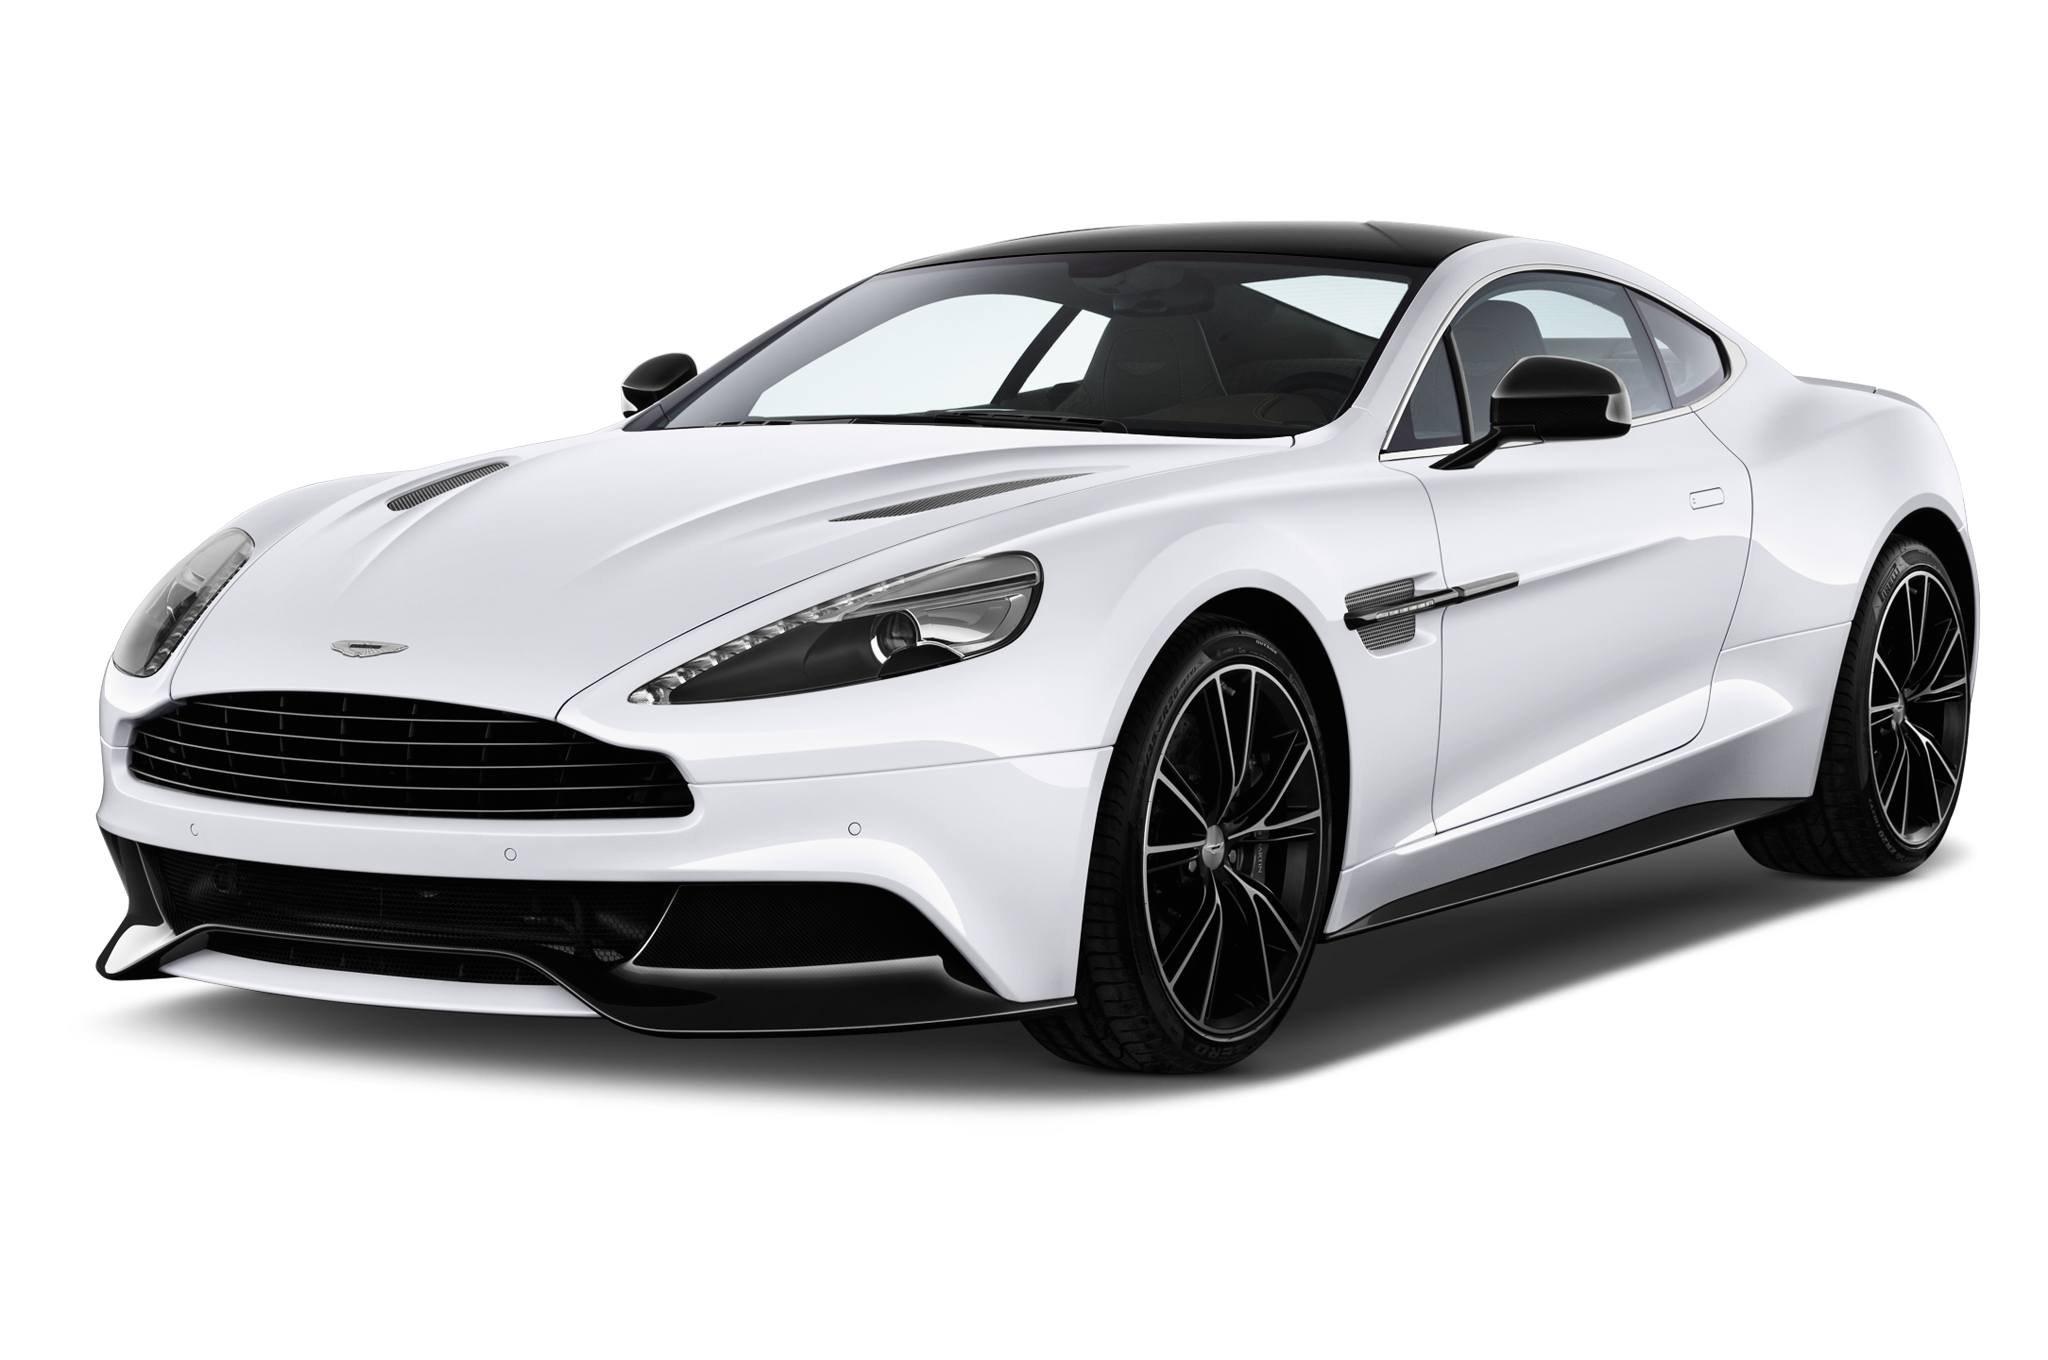 Aston Martin VANQUISH 2016 International Price & Overview